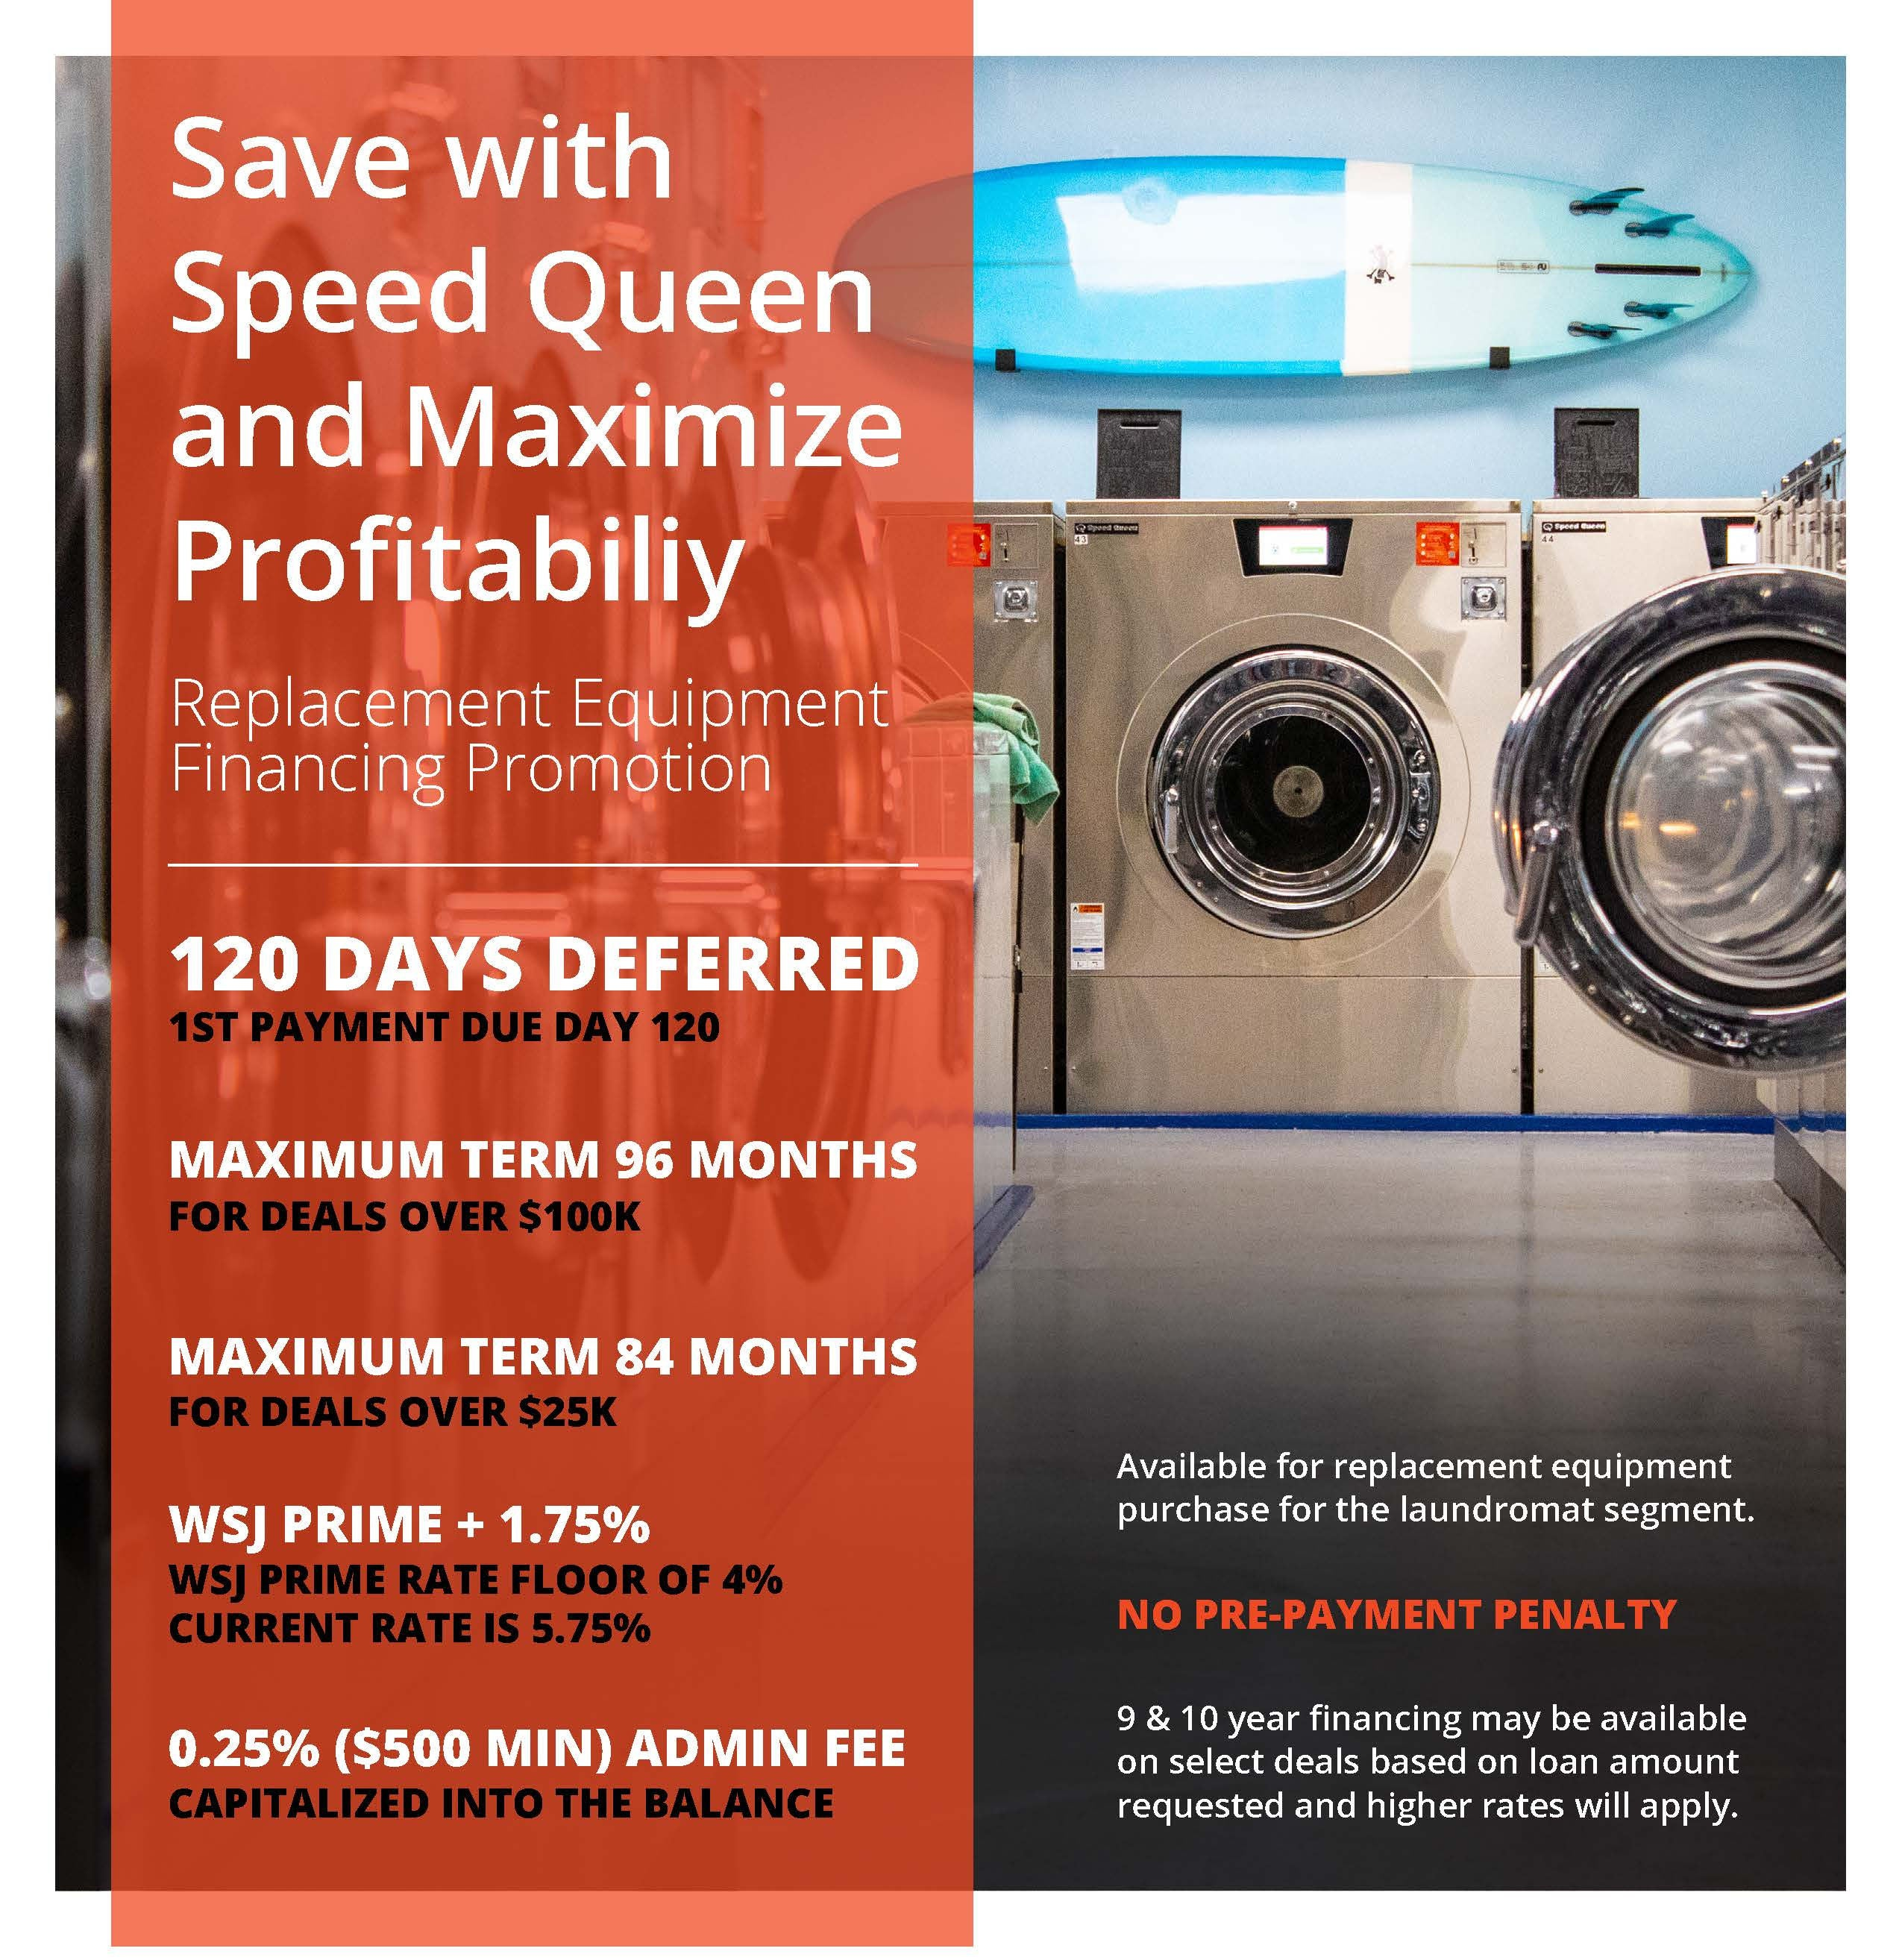 Save with Speed Queen and Maximize Profitability